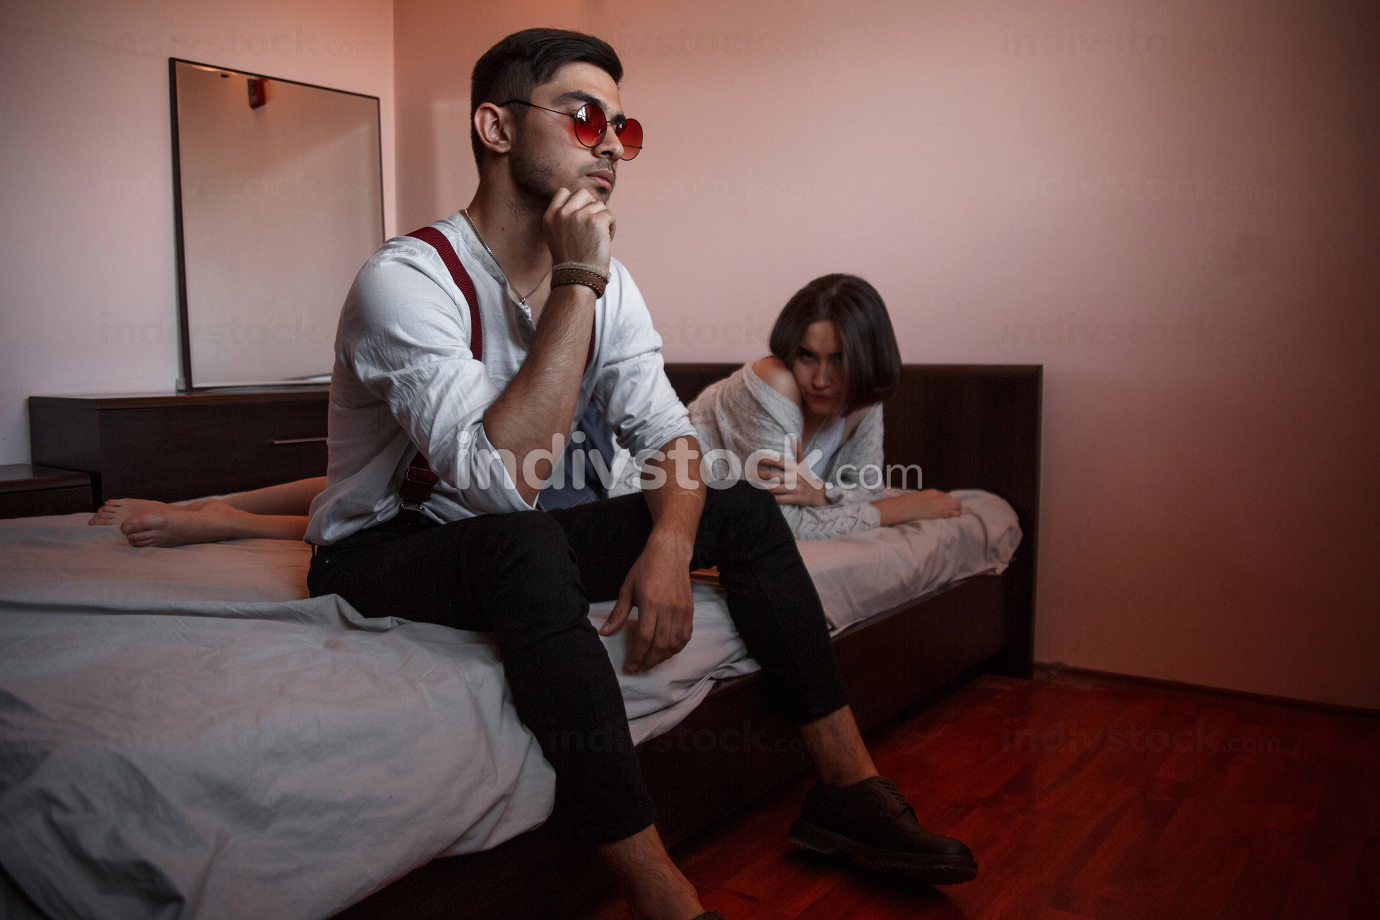 a young stylish guy in glasses sits on the edge of the bed with girl